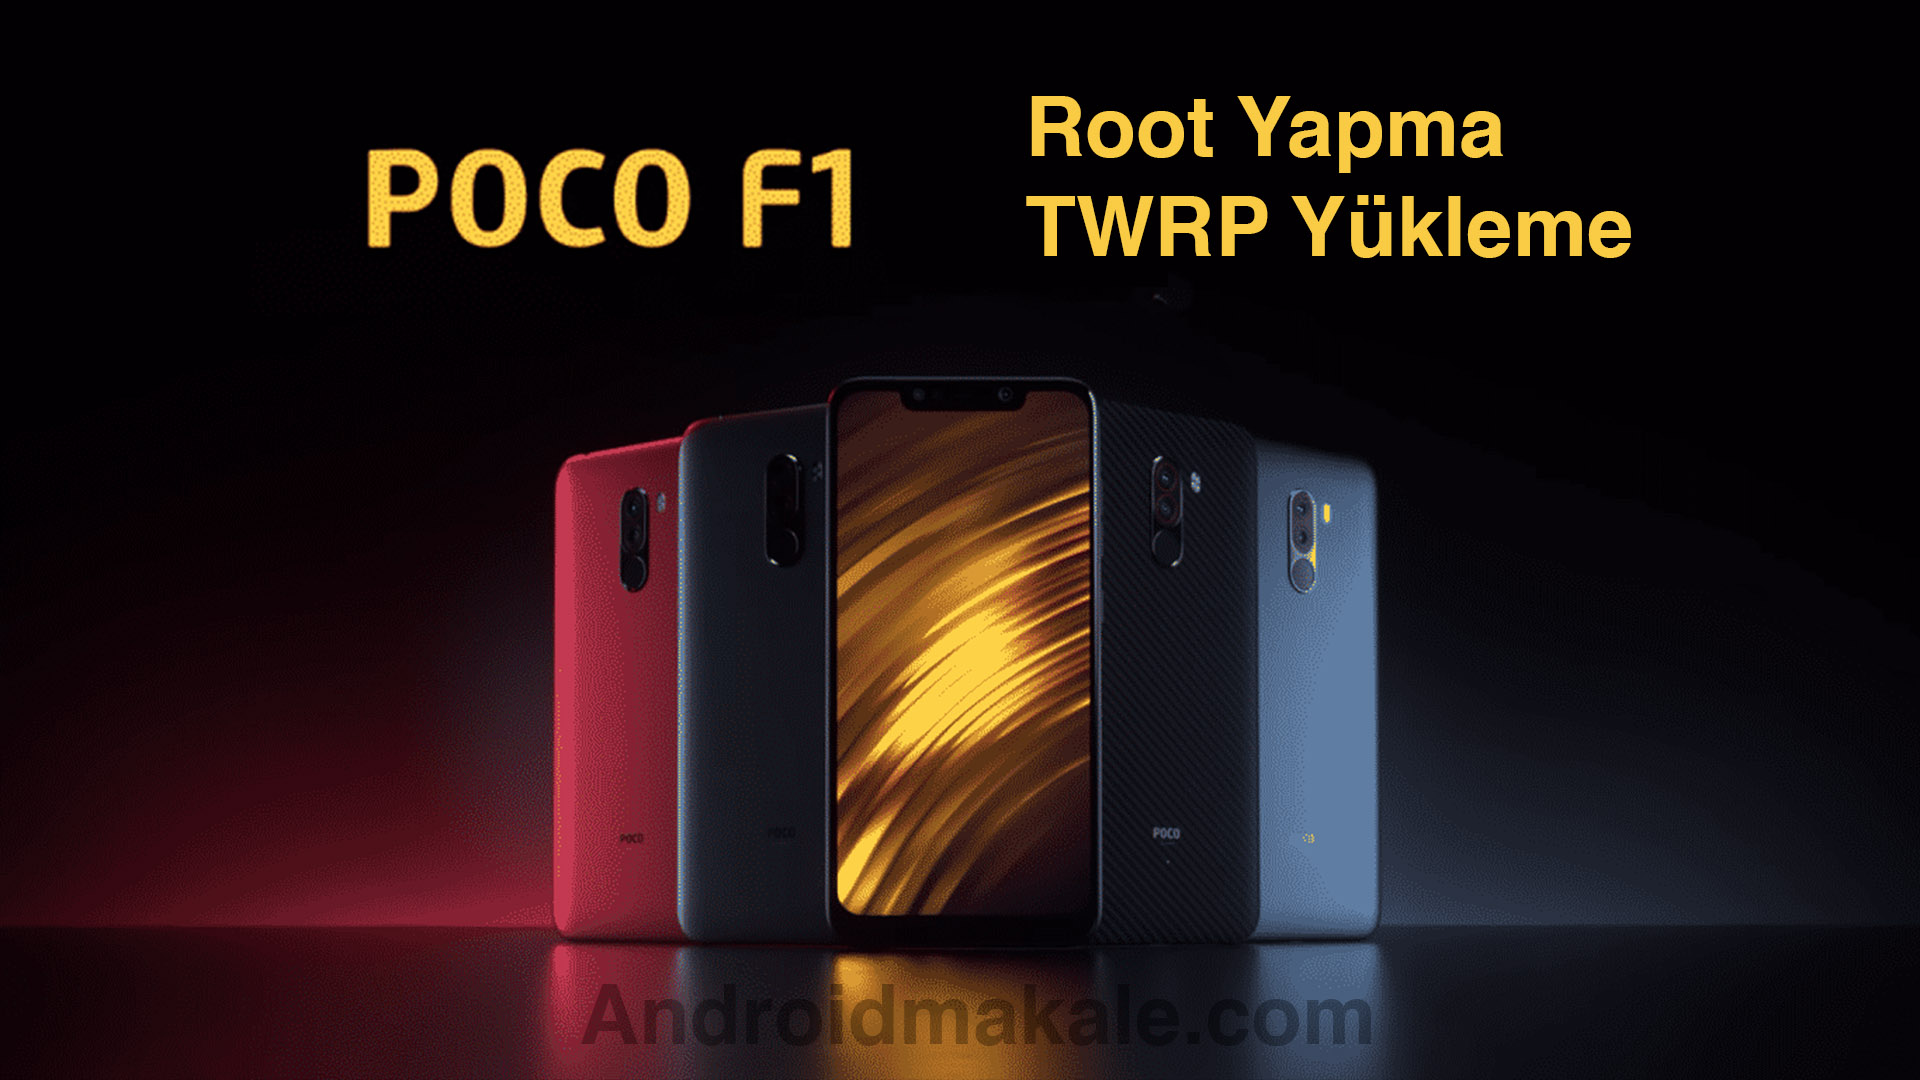 Photo of Xiaomi Poco F1 Root Yapma ve TWRP Recovery Yükleme